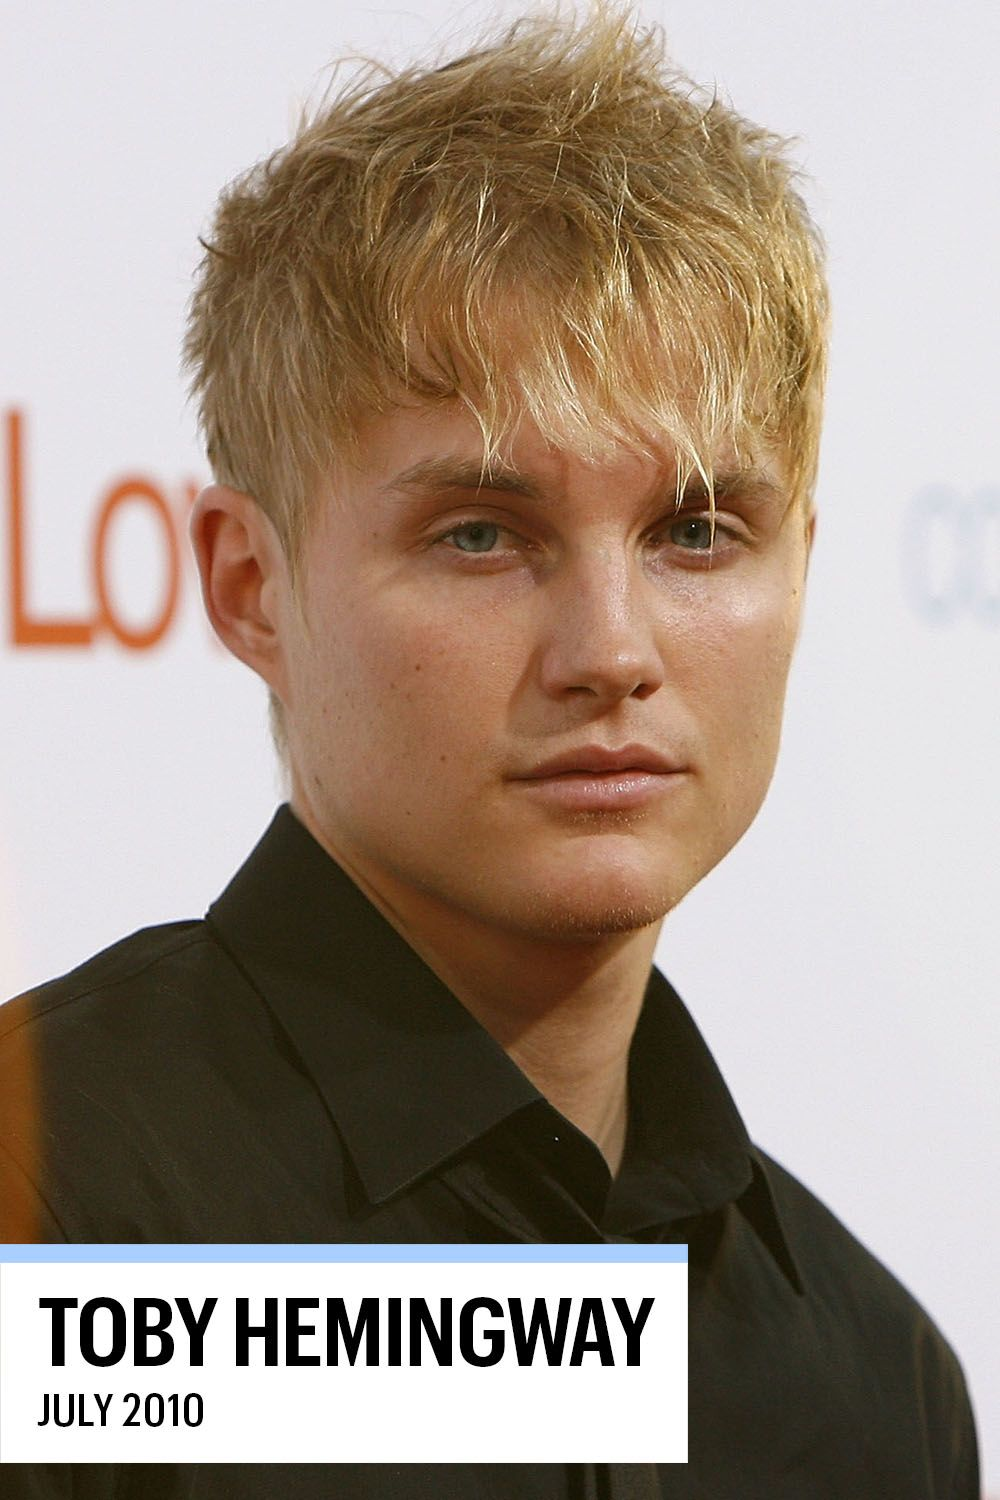 picture Toby Hemingway (born 1983)